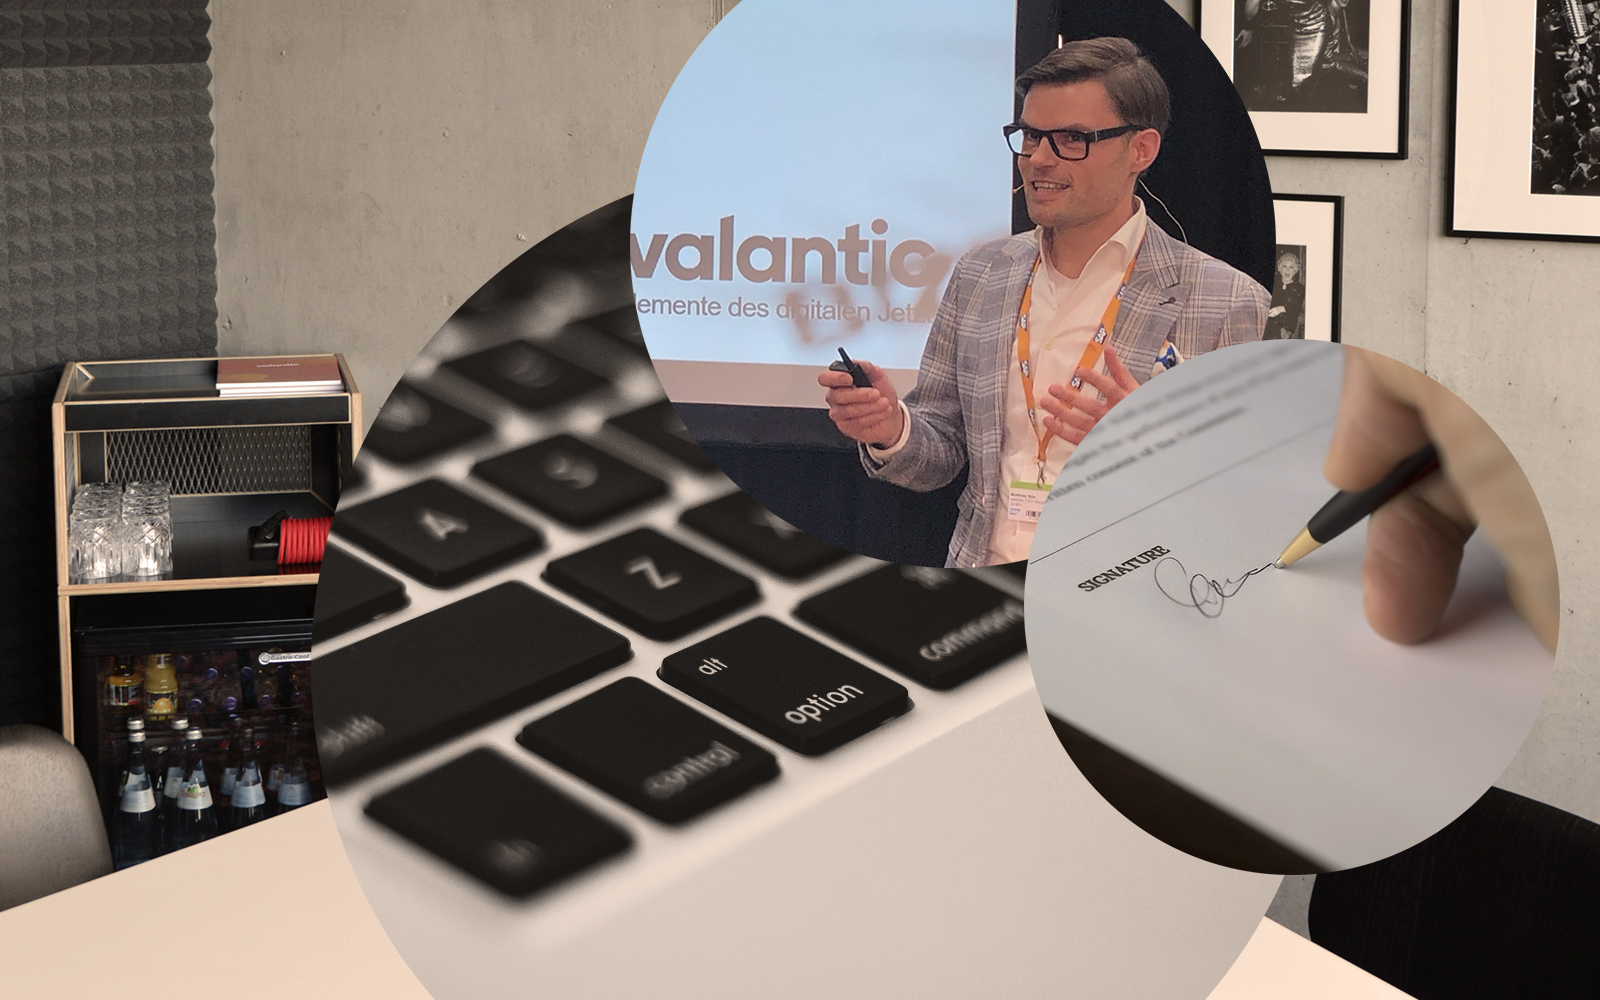 Image of Matthias Bös, Solution Architect for SAP C/4HANA at valantic Customer Engagement and Commerce, laptop keyboard, signature, conference room